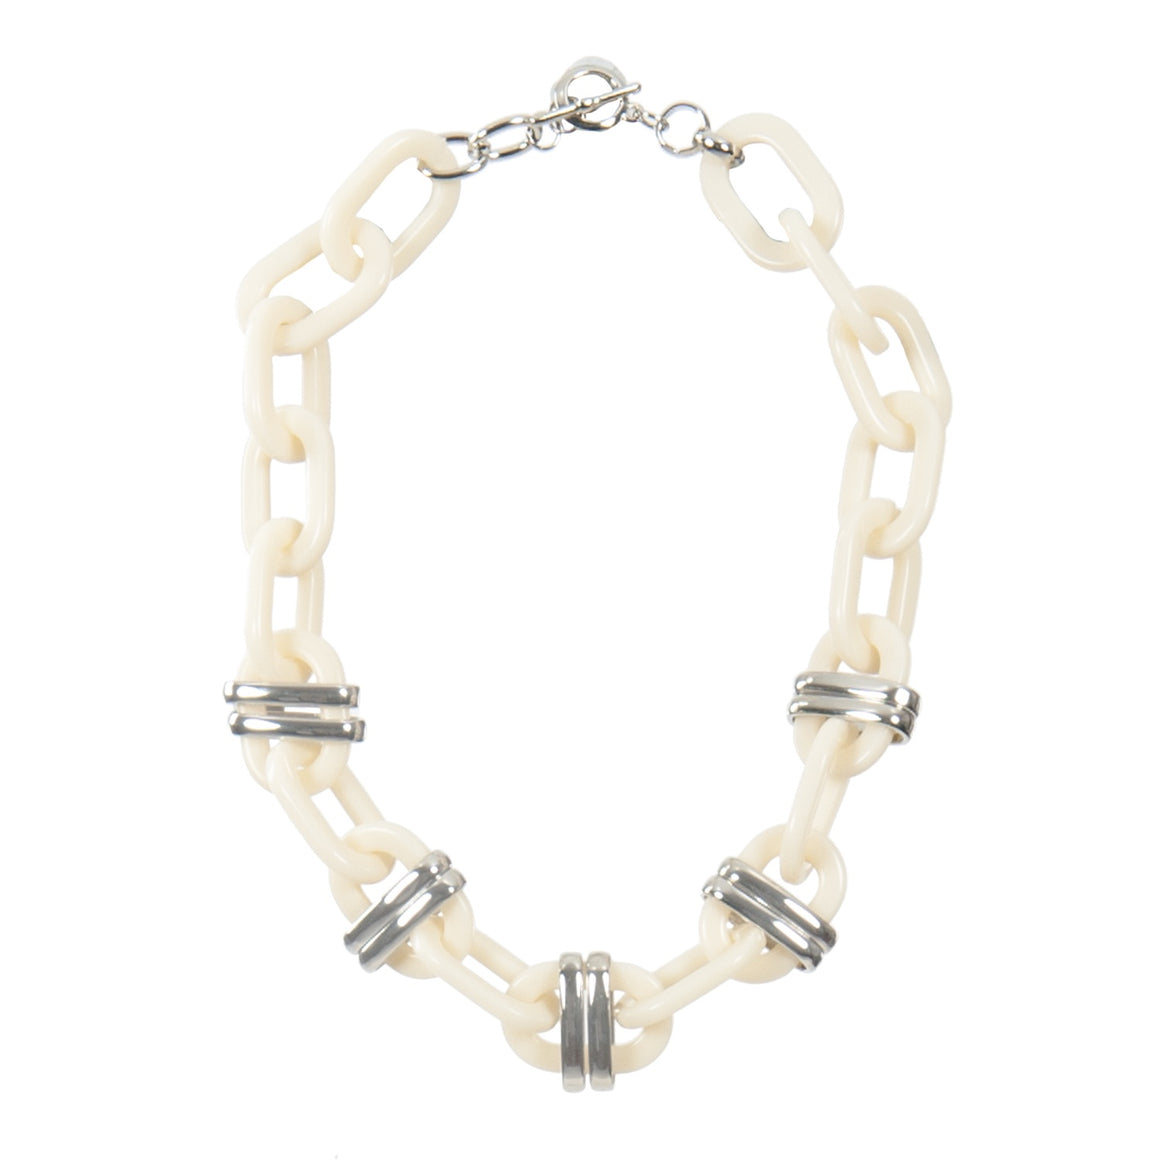 RESIN OVAL & METAL LINKS NECKLACE SILV WHITE